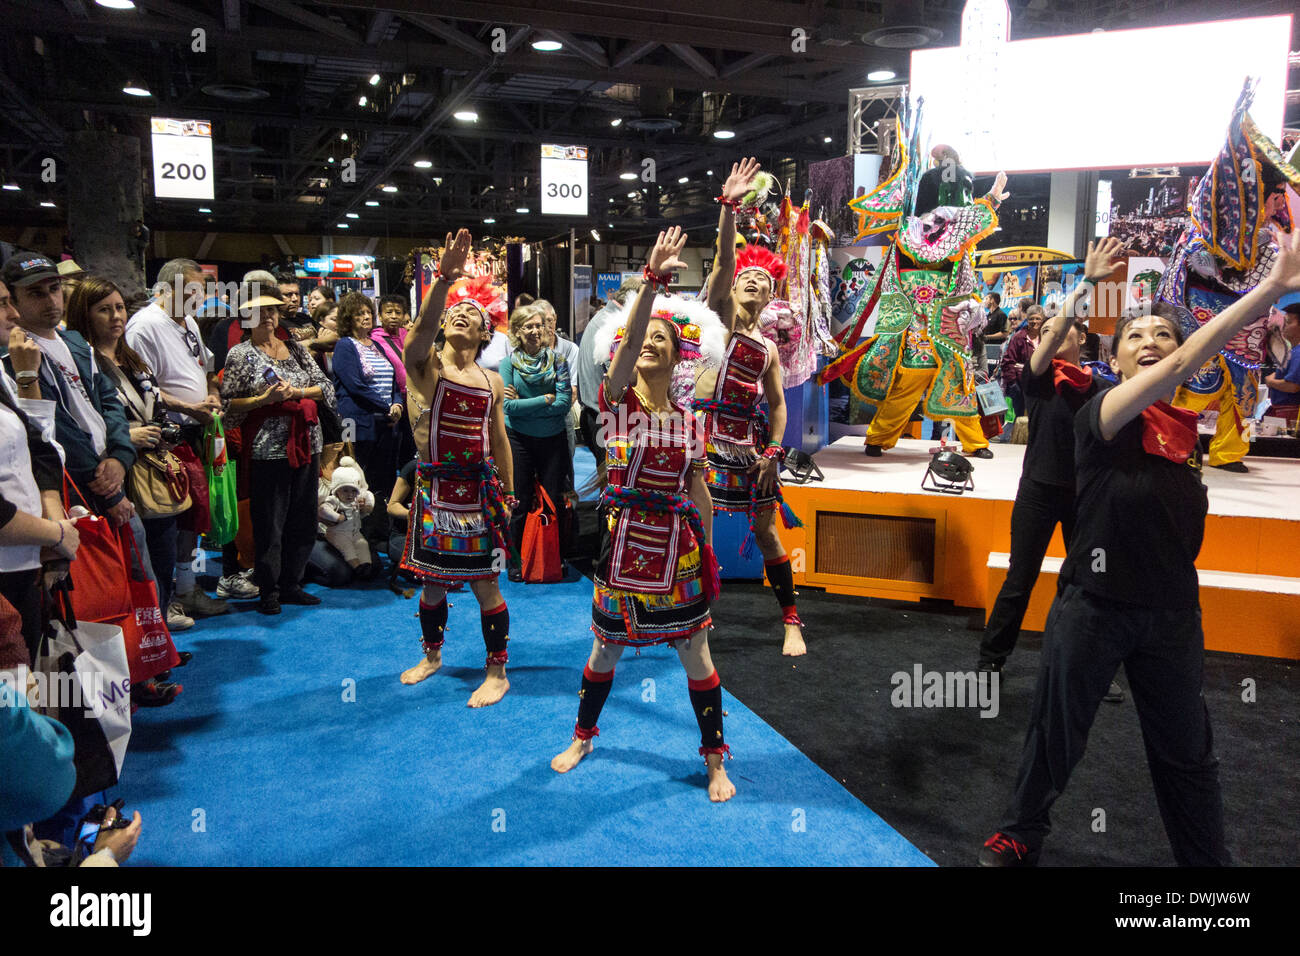 Tanz-Performance von asiatischen Tänzern in traditioneller Tracht auf Travel Trade Show in Los Angeles-Kalifornien-USA Stockbild